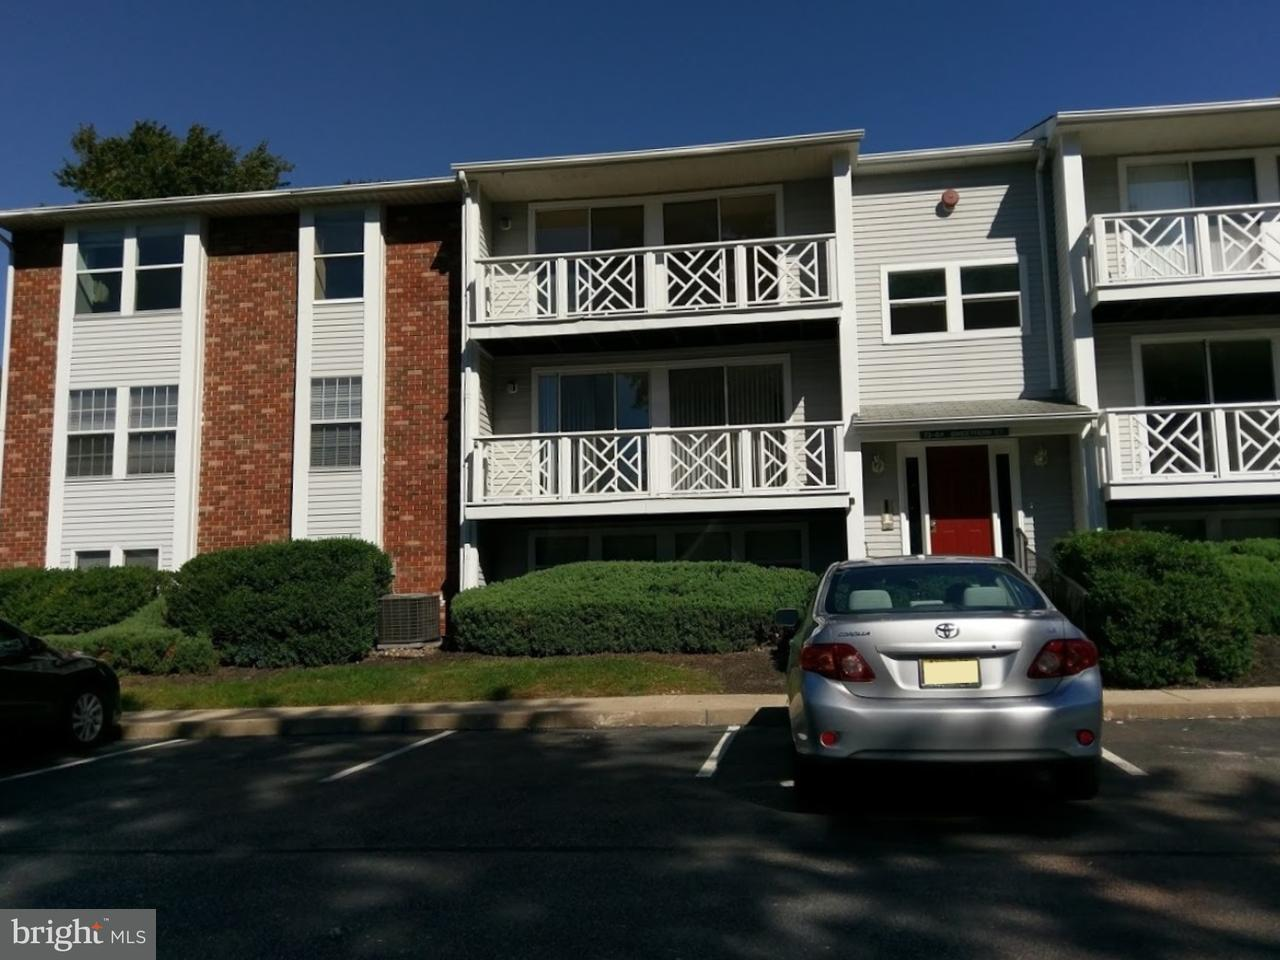 Condominium for Rent at 77 SWEETFERN Court Evesham Twp, New Jersey 08053 United States